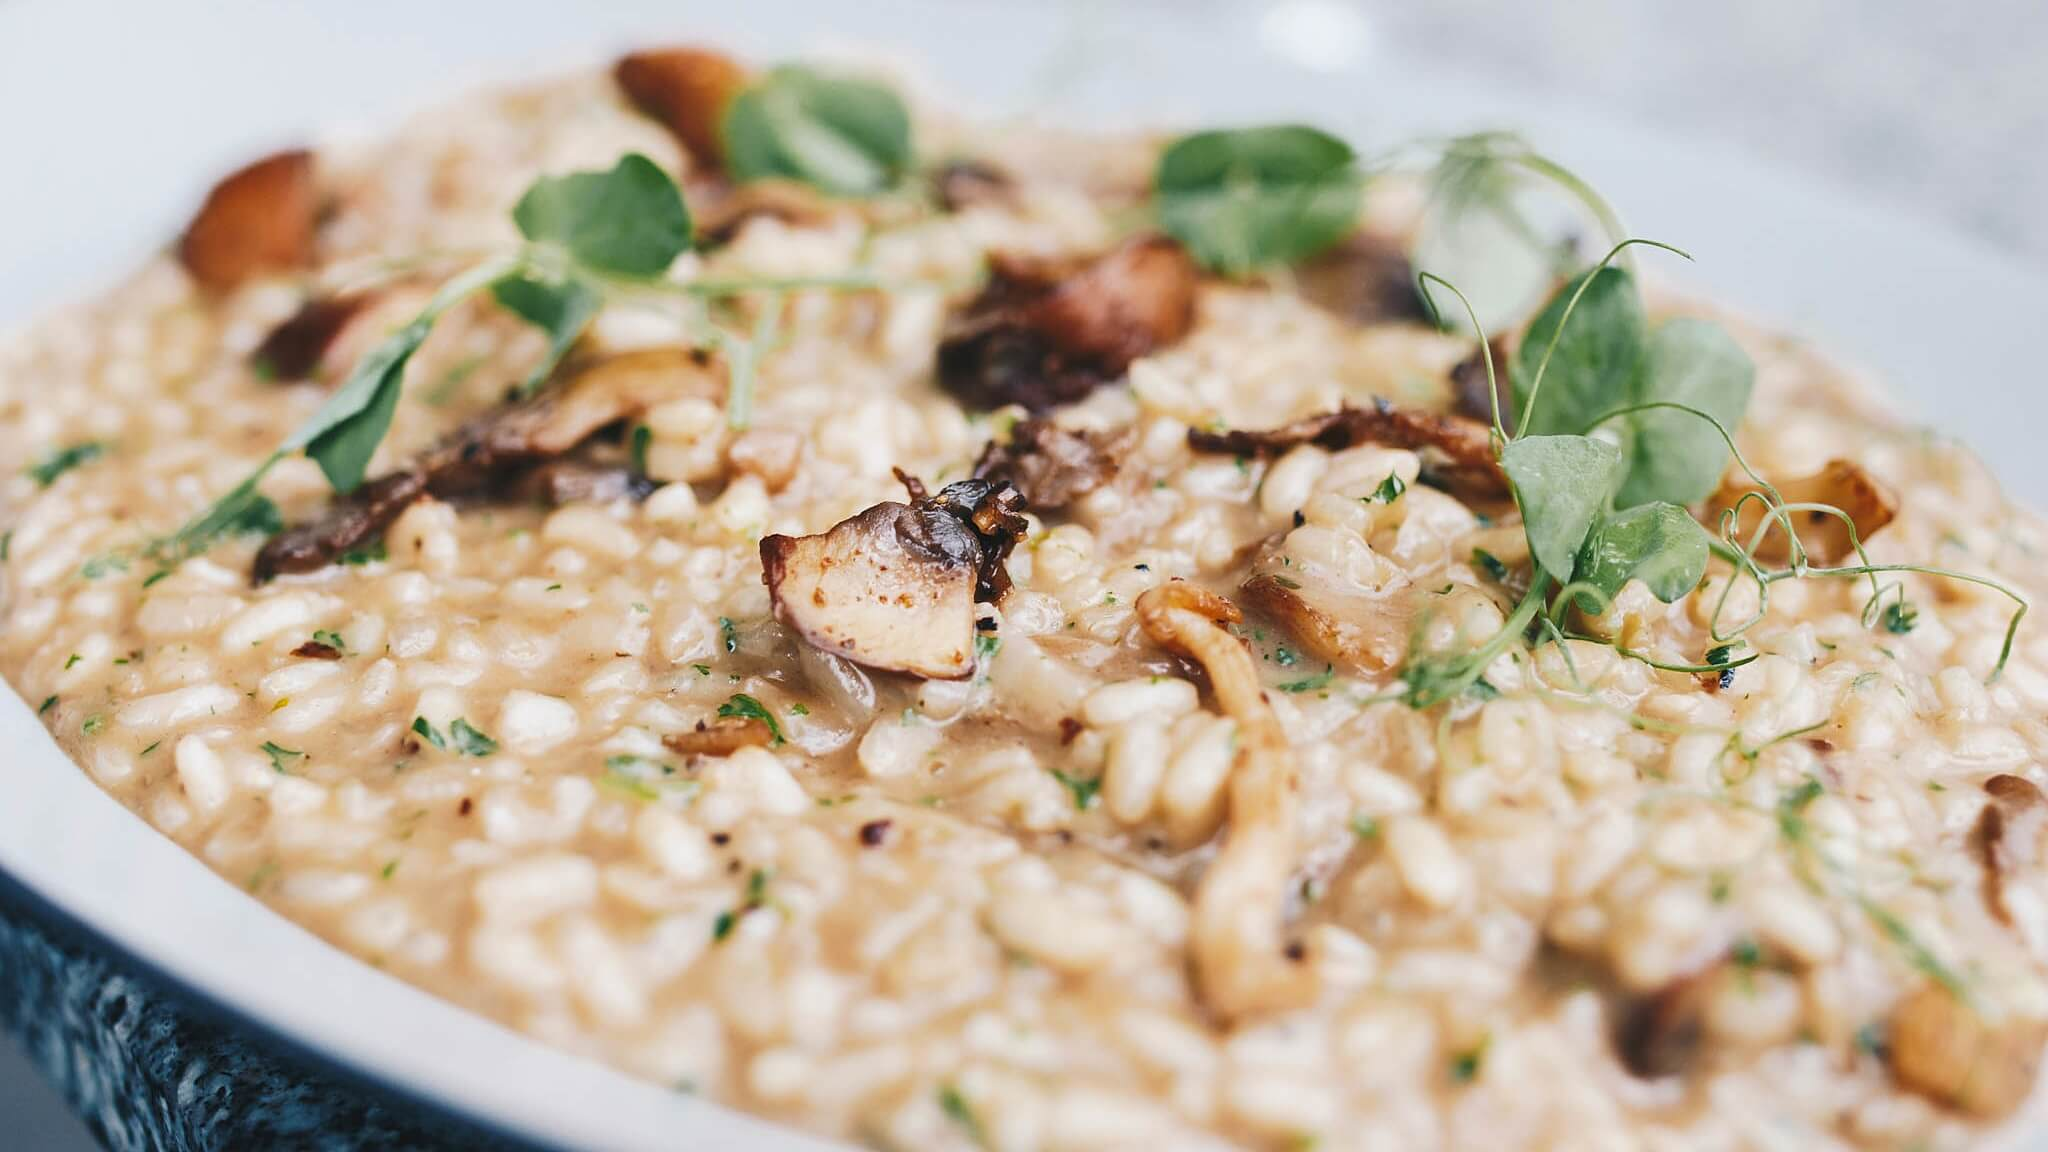 Vegan Risotto With Smoky Tofu and Dairy-Free Oat Cream